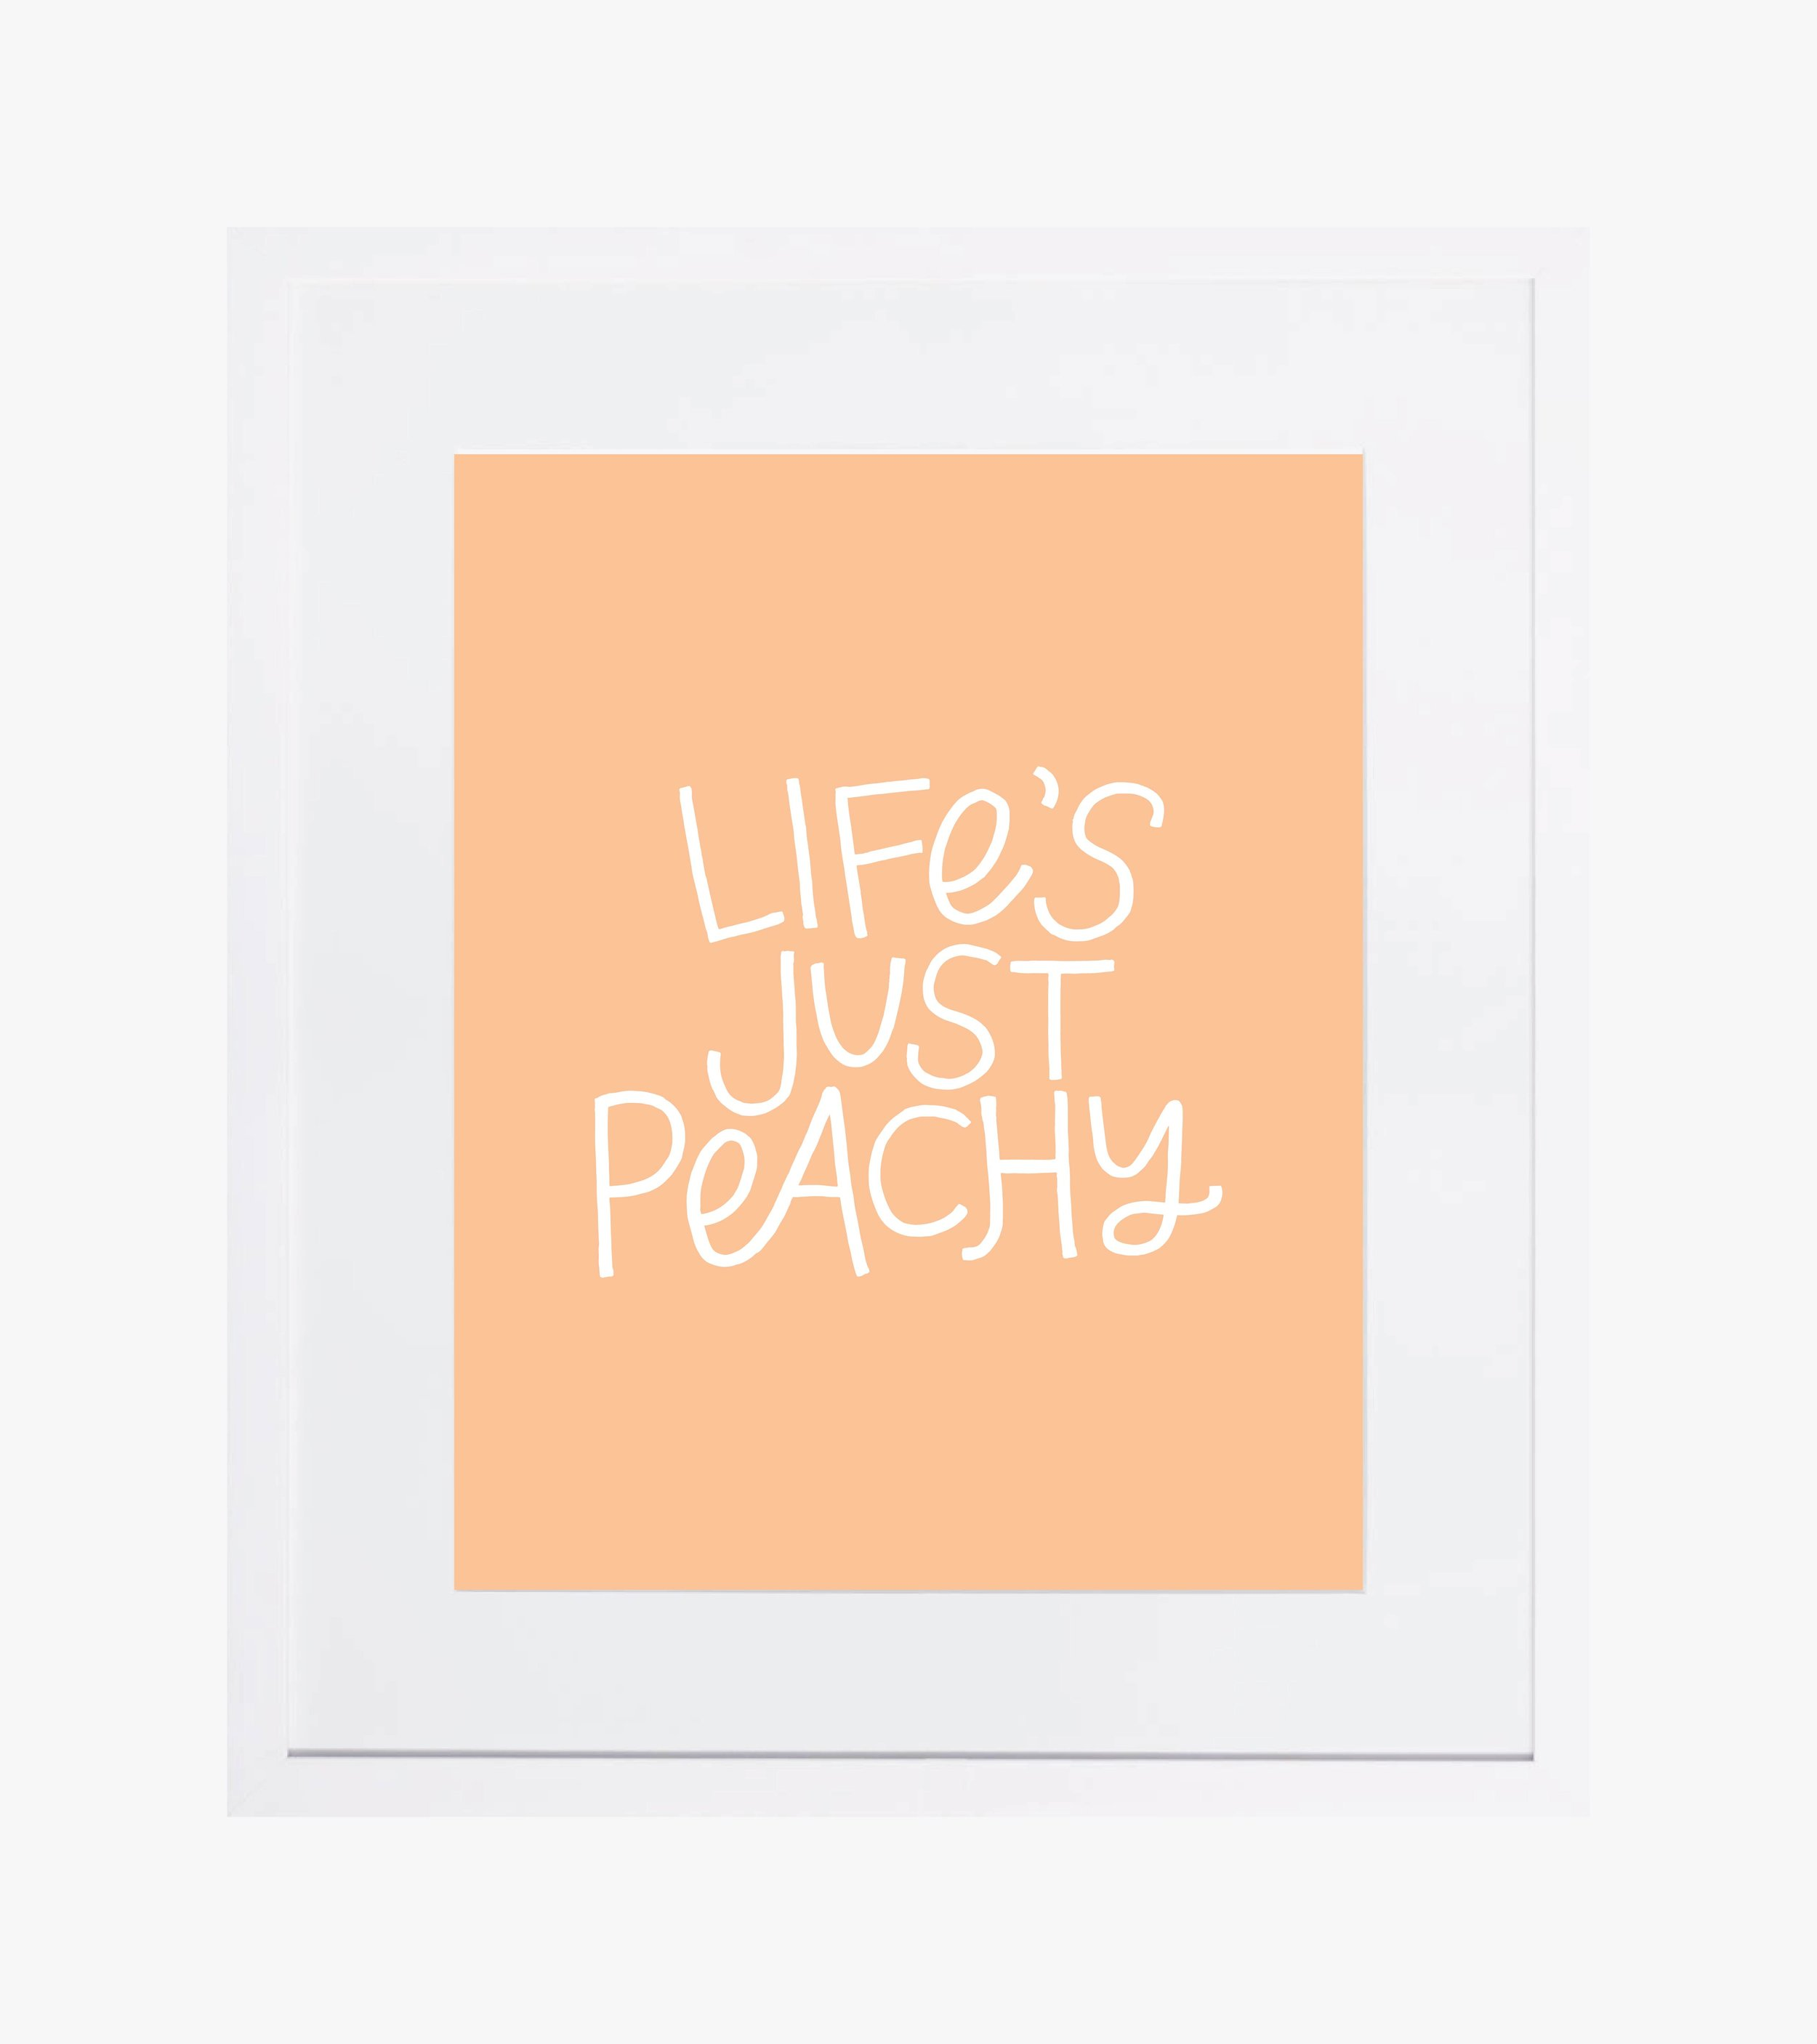 life's just peachy-02